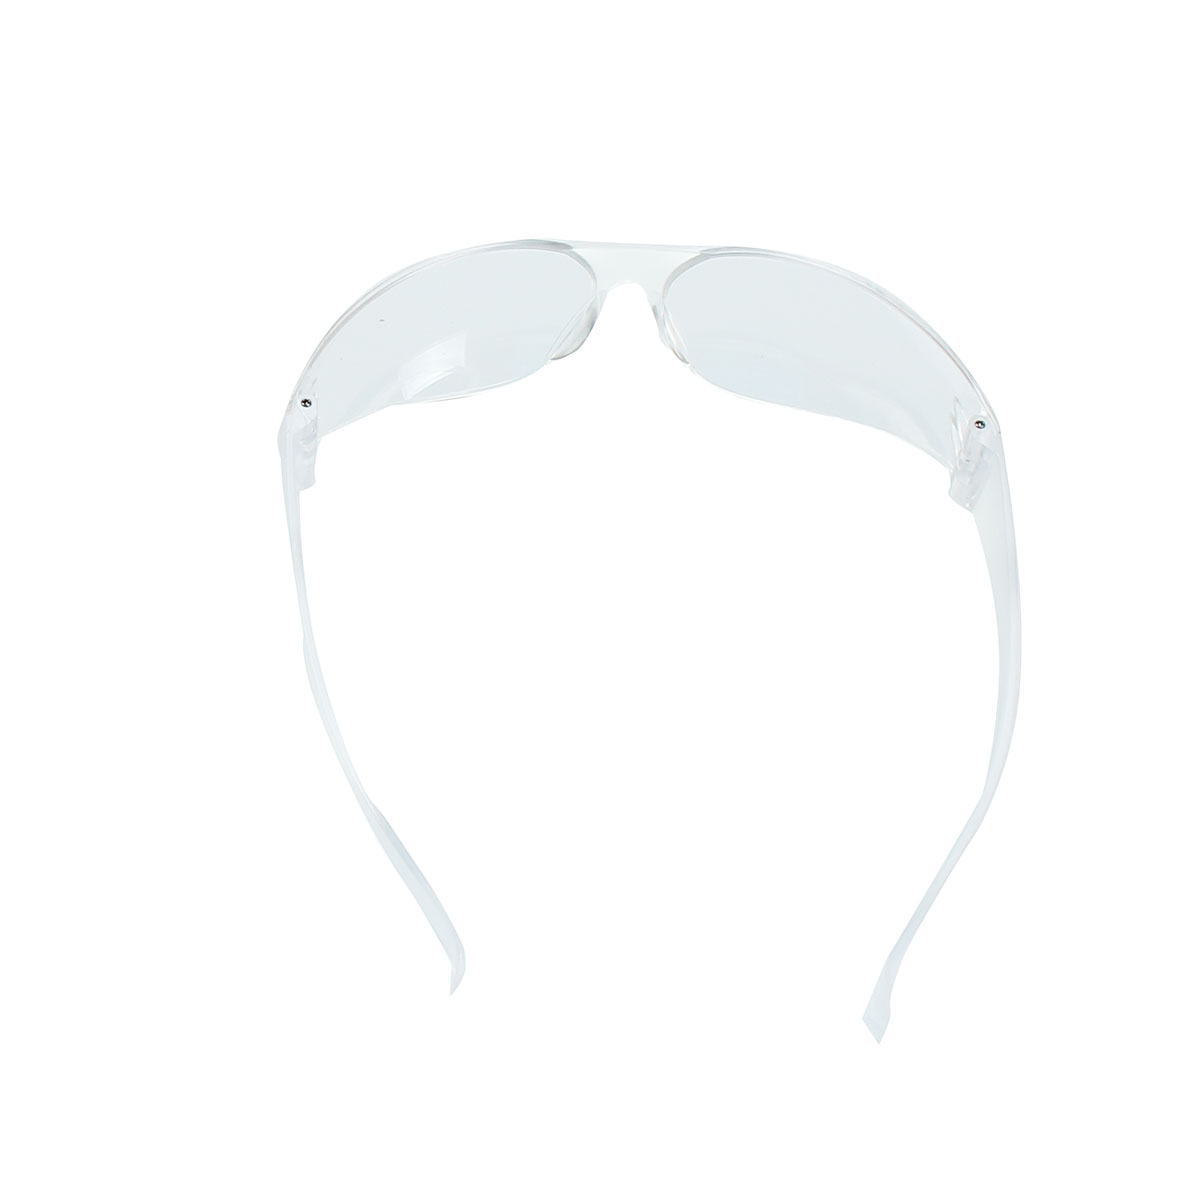 Safety Glasses Spectacles Lab Eye Protection Protective Eyewear Clear Lens